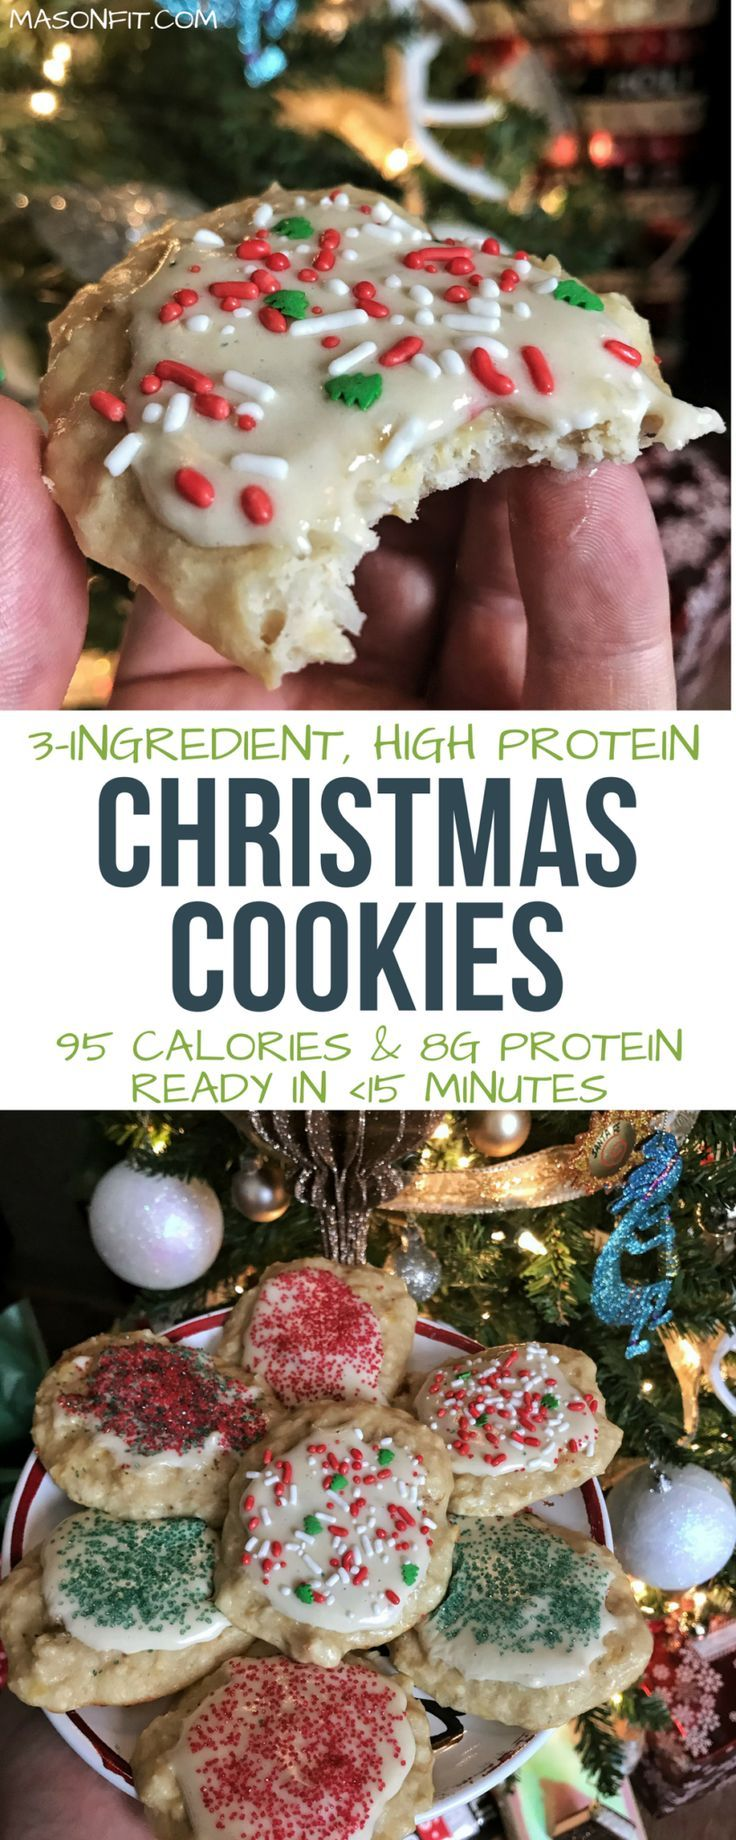 These High Protein Christmas Cookies Pack 8 Grams Of Protein And